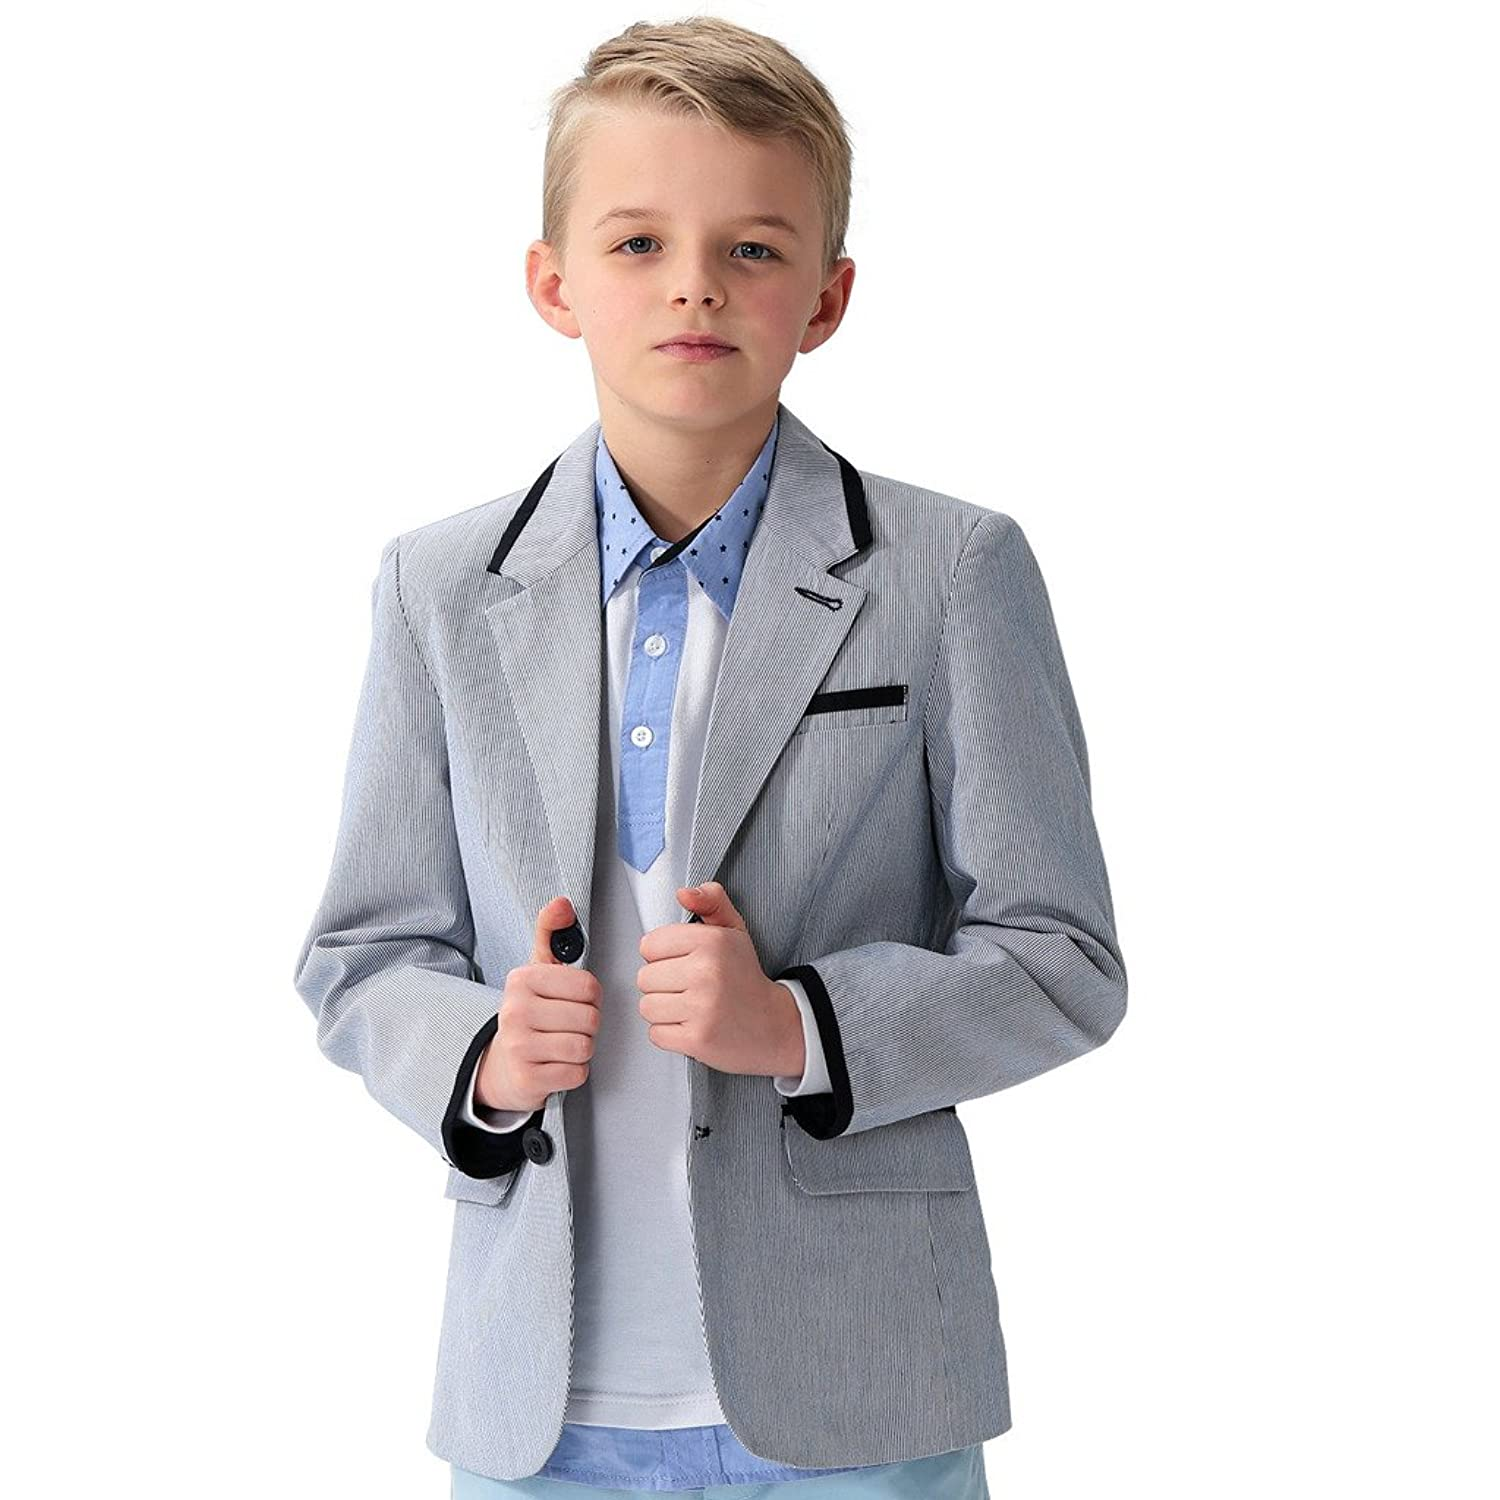 Suits And Blazers - Shop Suits And Blazers at India's Best Online Shopping Store. Check Price and Buy Online. Free Shipping Cash on Delivery Best Offers. Explore Plus. Login & Signup. More. Cart US Polo Kids Solid Single Breasted Casual Boys Blazer. 4.